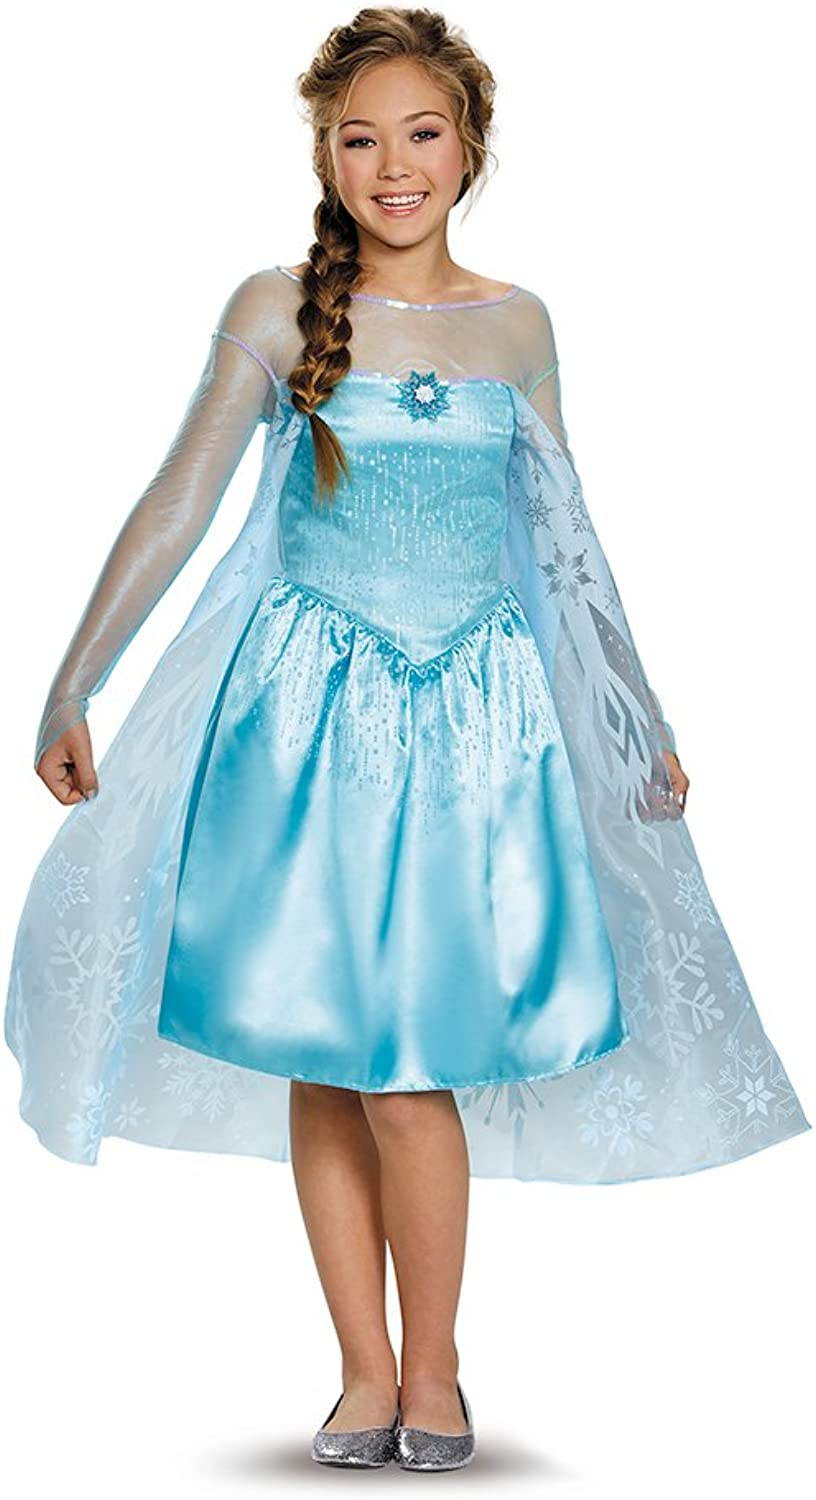 Disguise Costumes Elsa Tween Costume, X-Large (14-16), One color